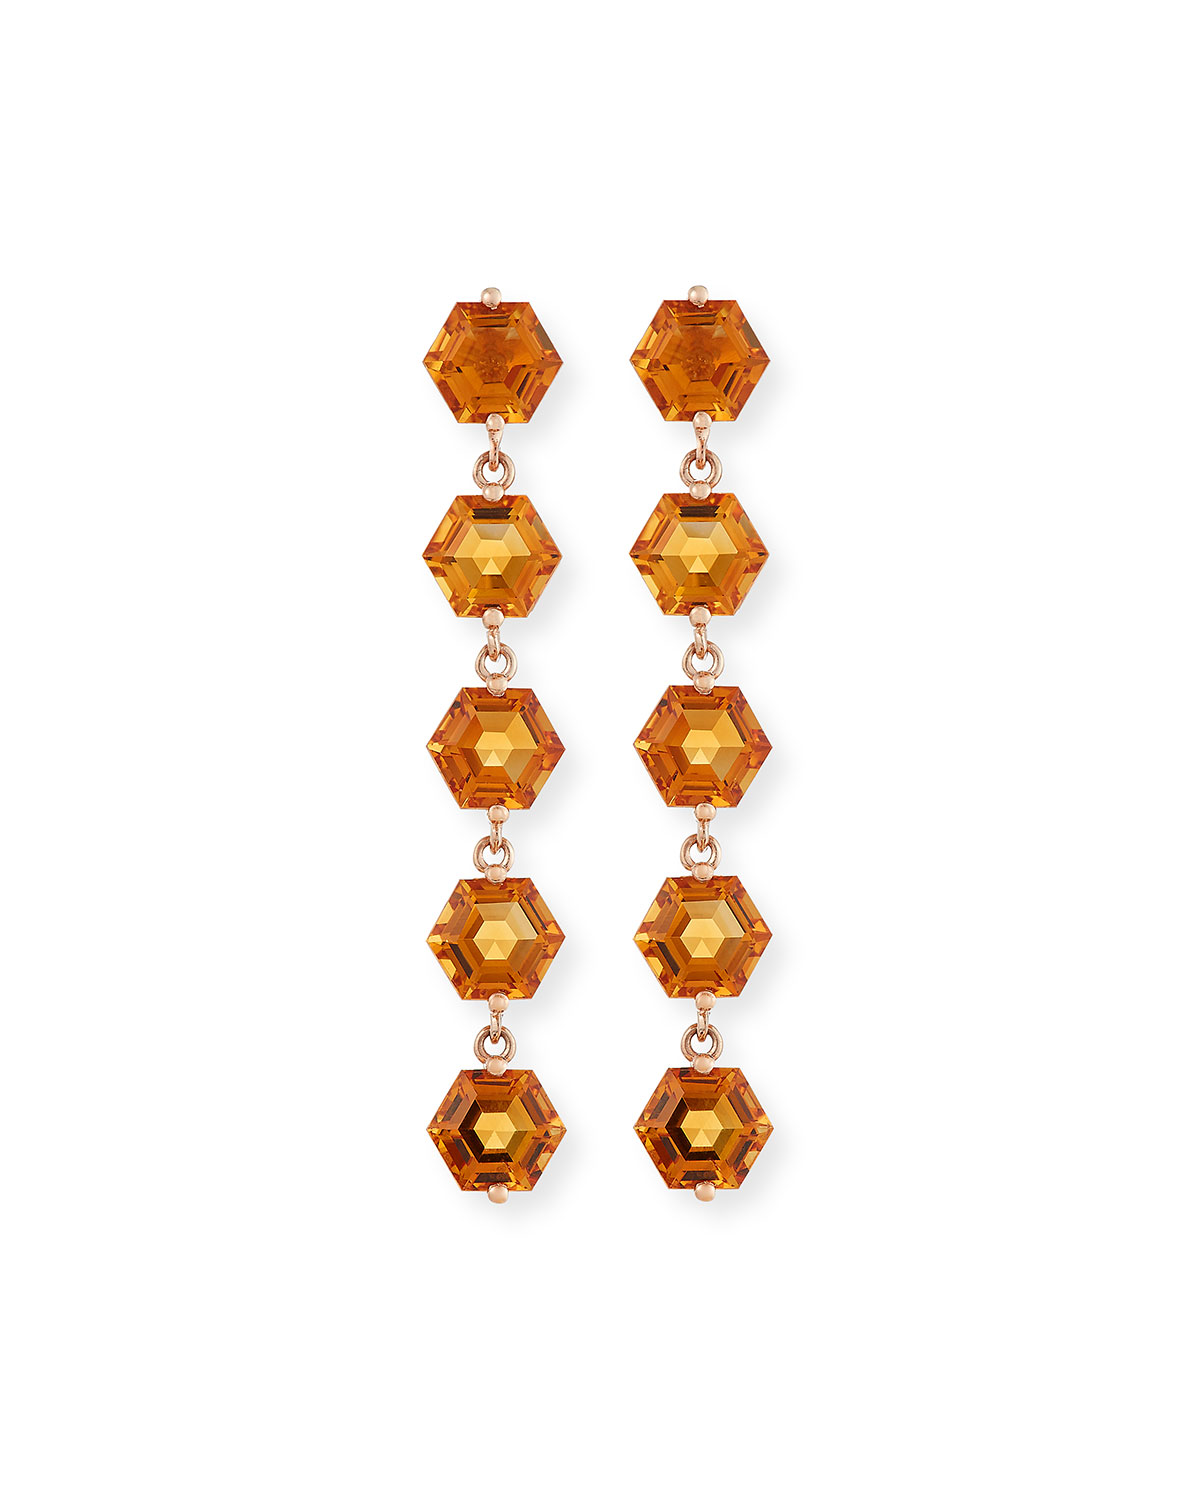 KALAN by Suzanne Kalan Bloom 14k Rose Gold 5 Hexagon Drop Earrings, Light Orange